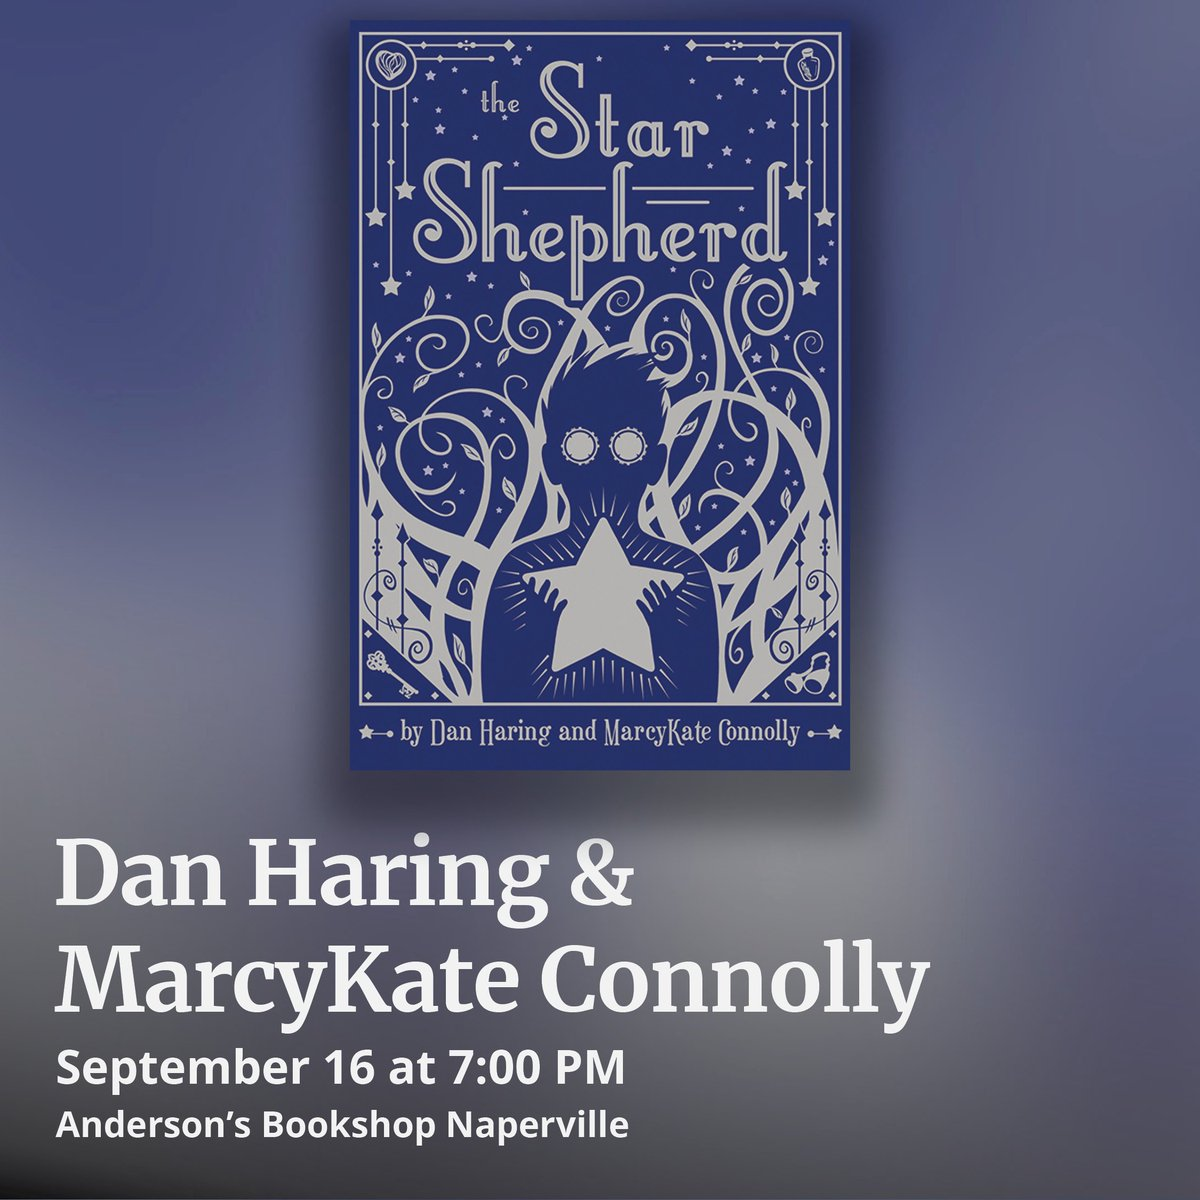 Visit our #Naperville store tonight to meet Marcy Kate Connelly @MarcyKate & Dan Haring @danharing with their new book #TheStarShepard, an Andersons staff pick! andersonsbookshop.com/event/dan-hari…